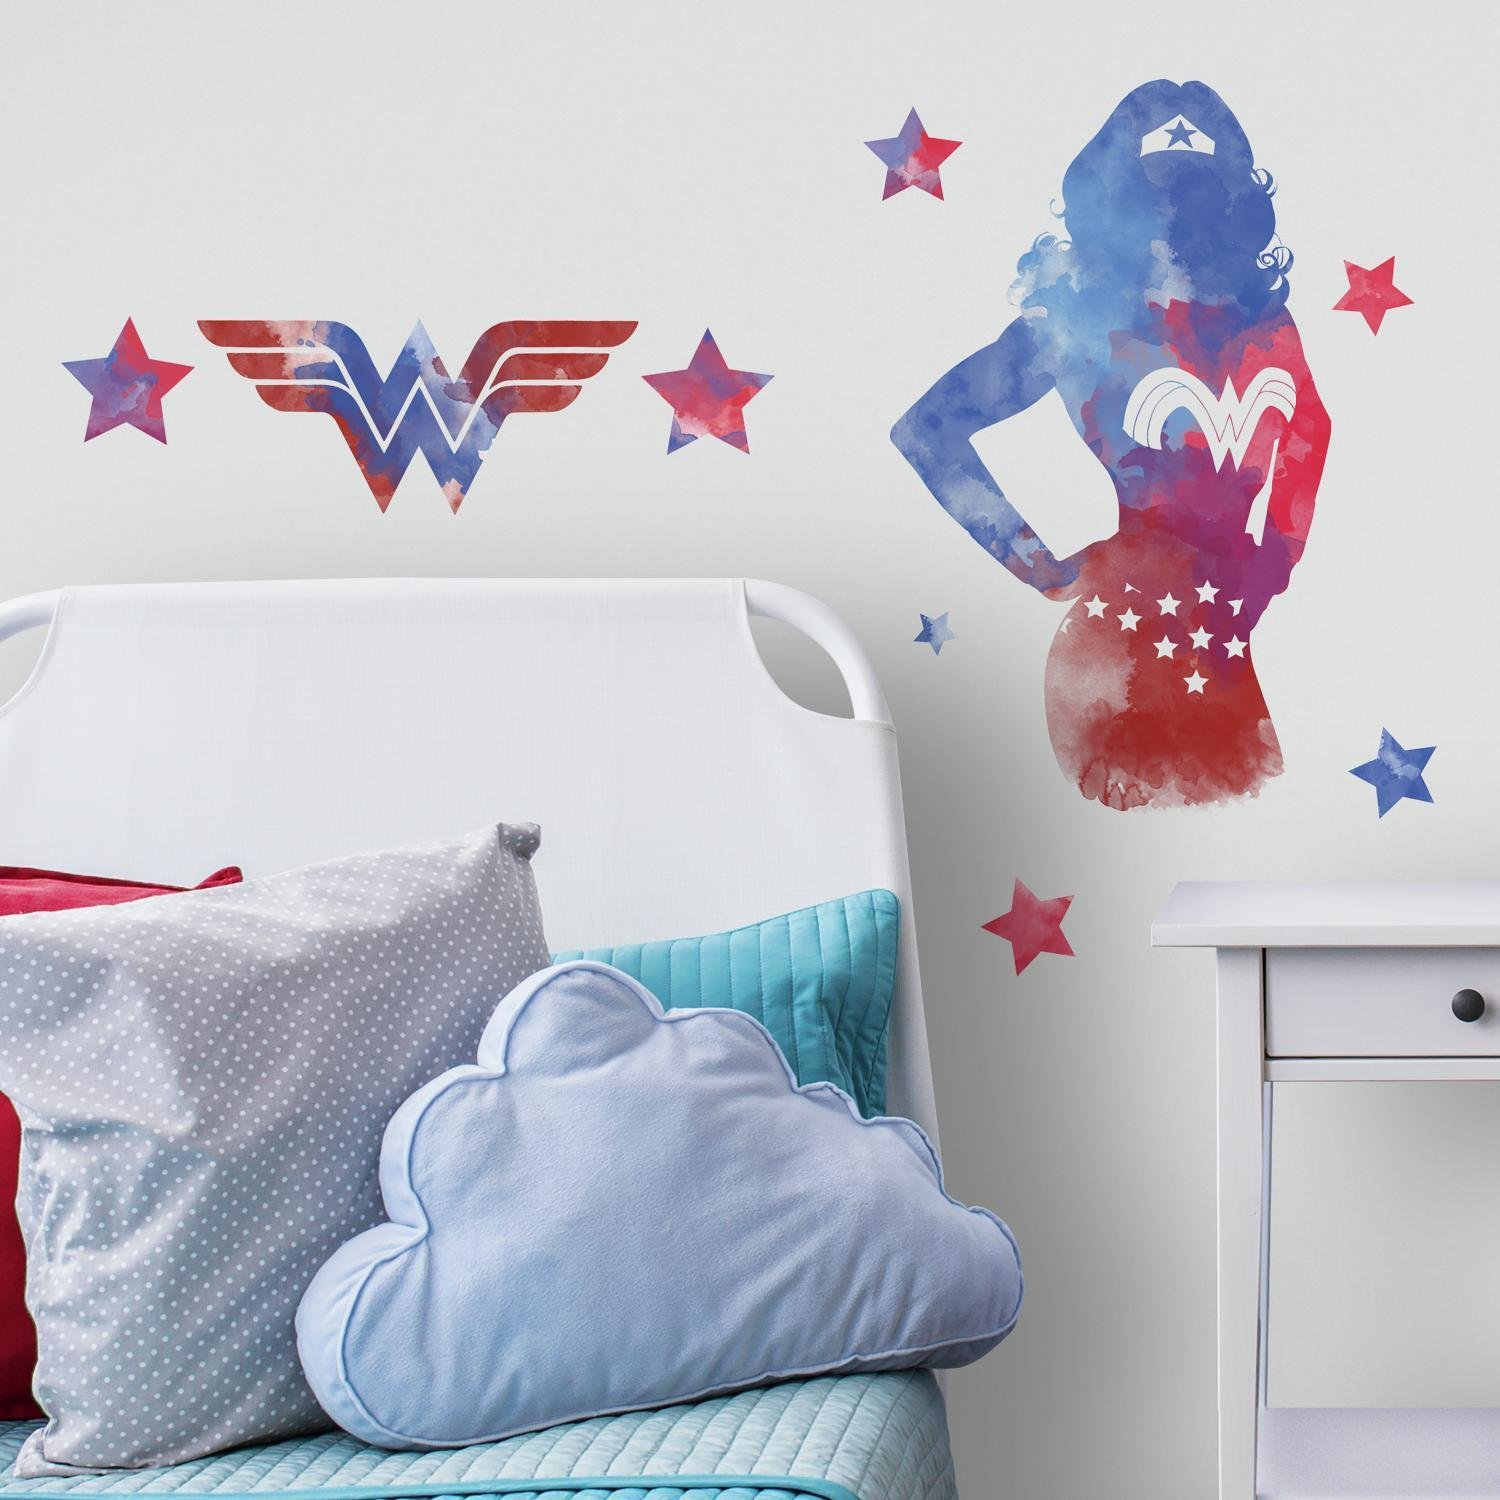 RoomMates RMK3602GM Wonder Woman Watercolor Peel and Stick Giant Wall Decals by RoomMates